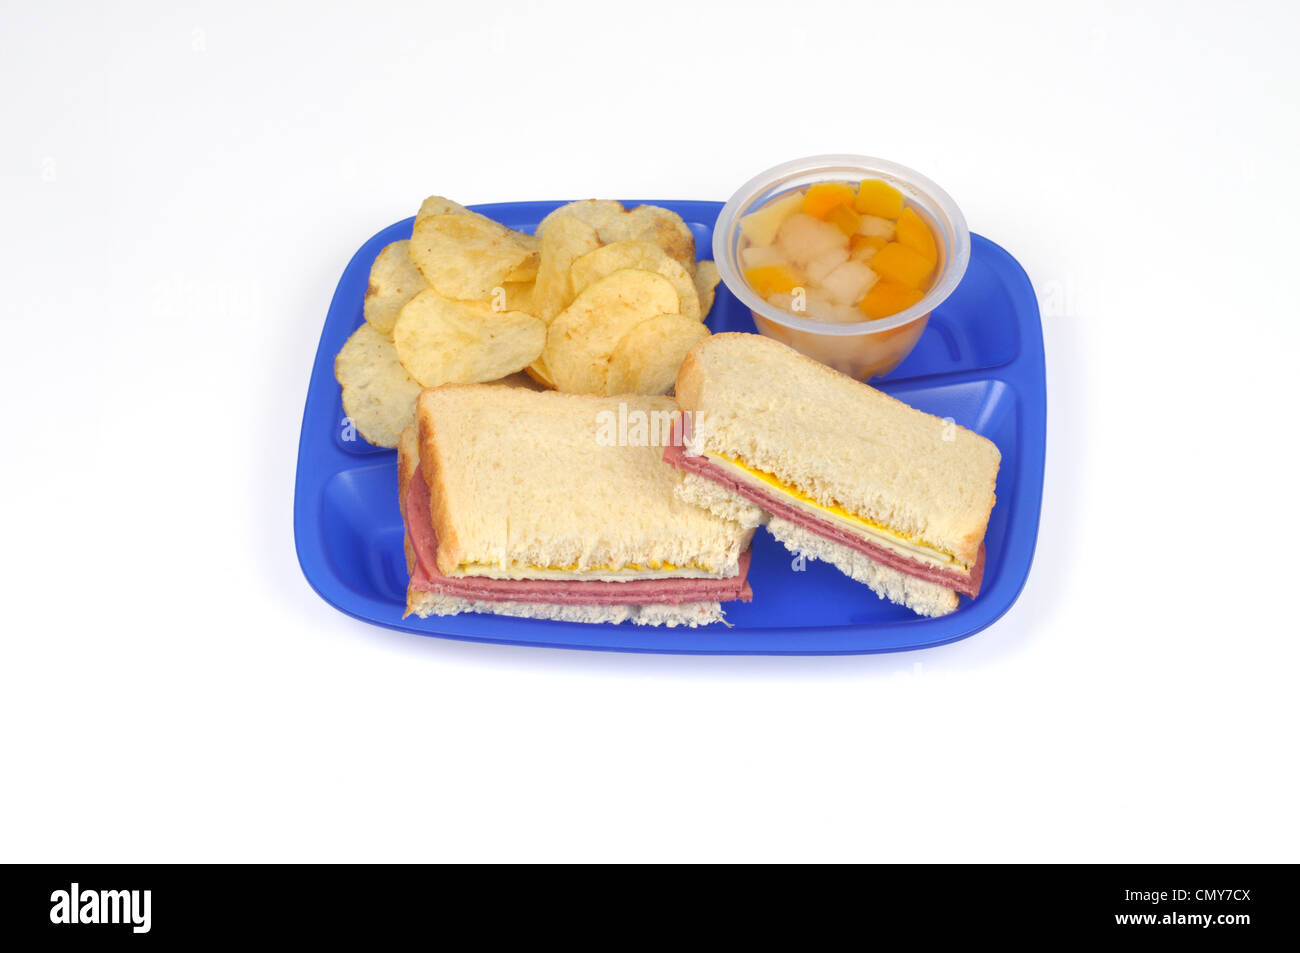 School lunch tray concept with salami and cheese sandwich, chips and fruit cup - Stock Image